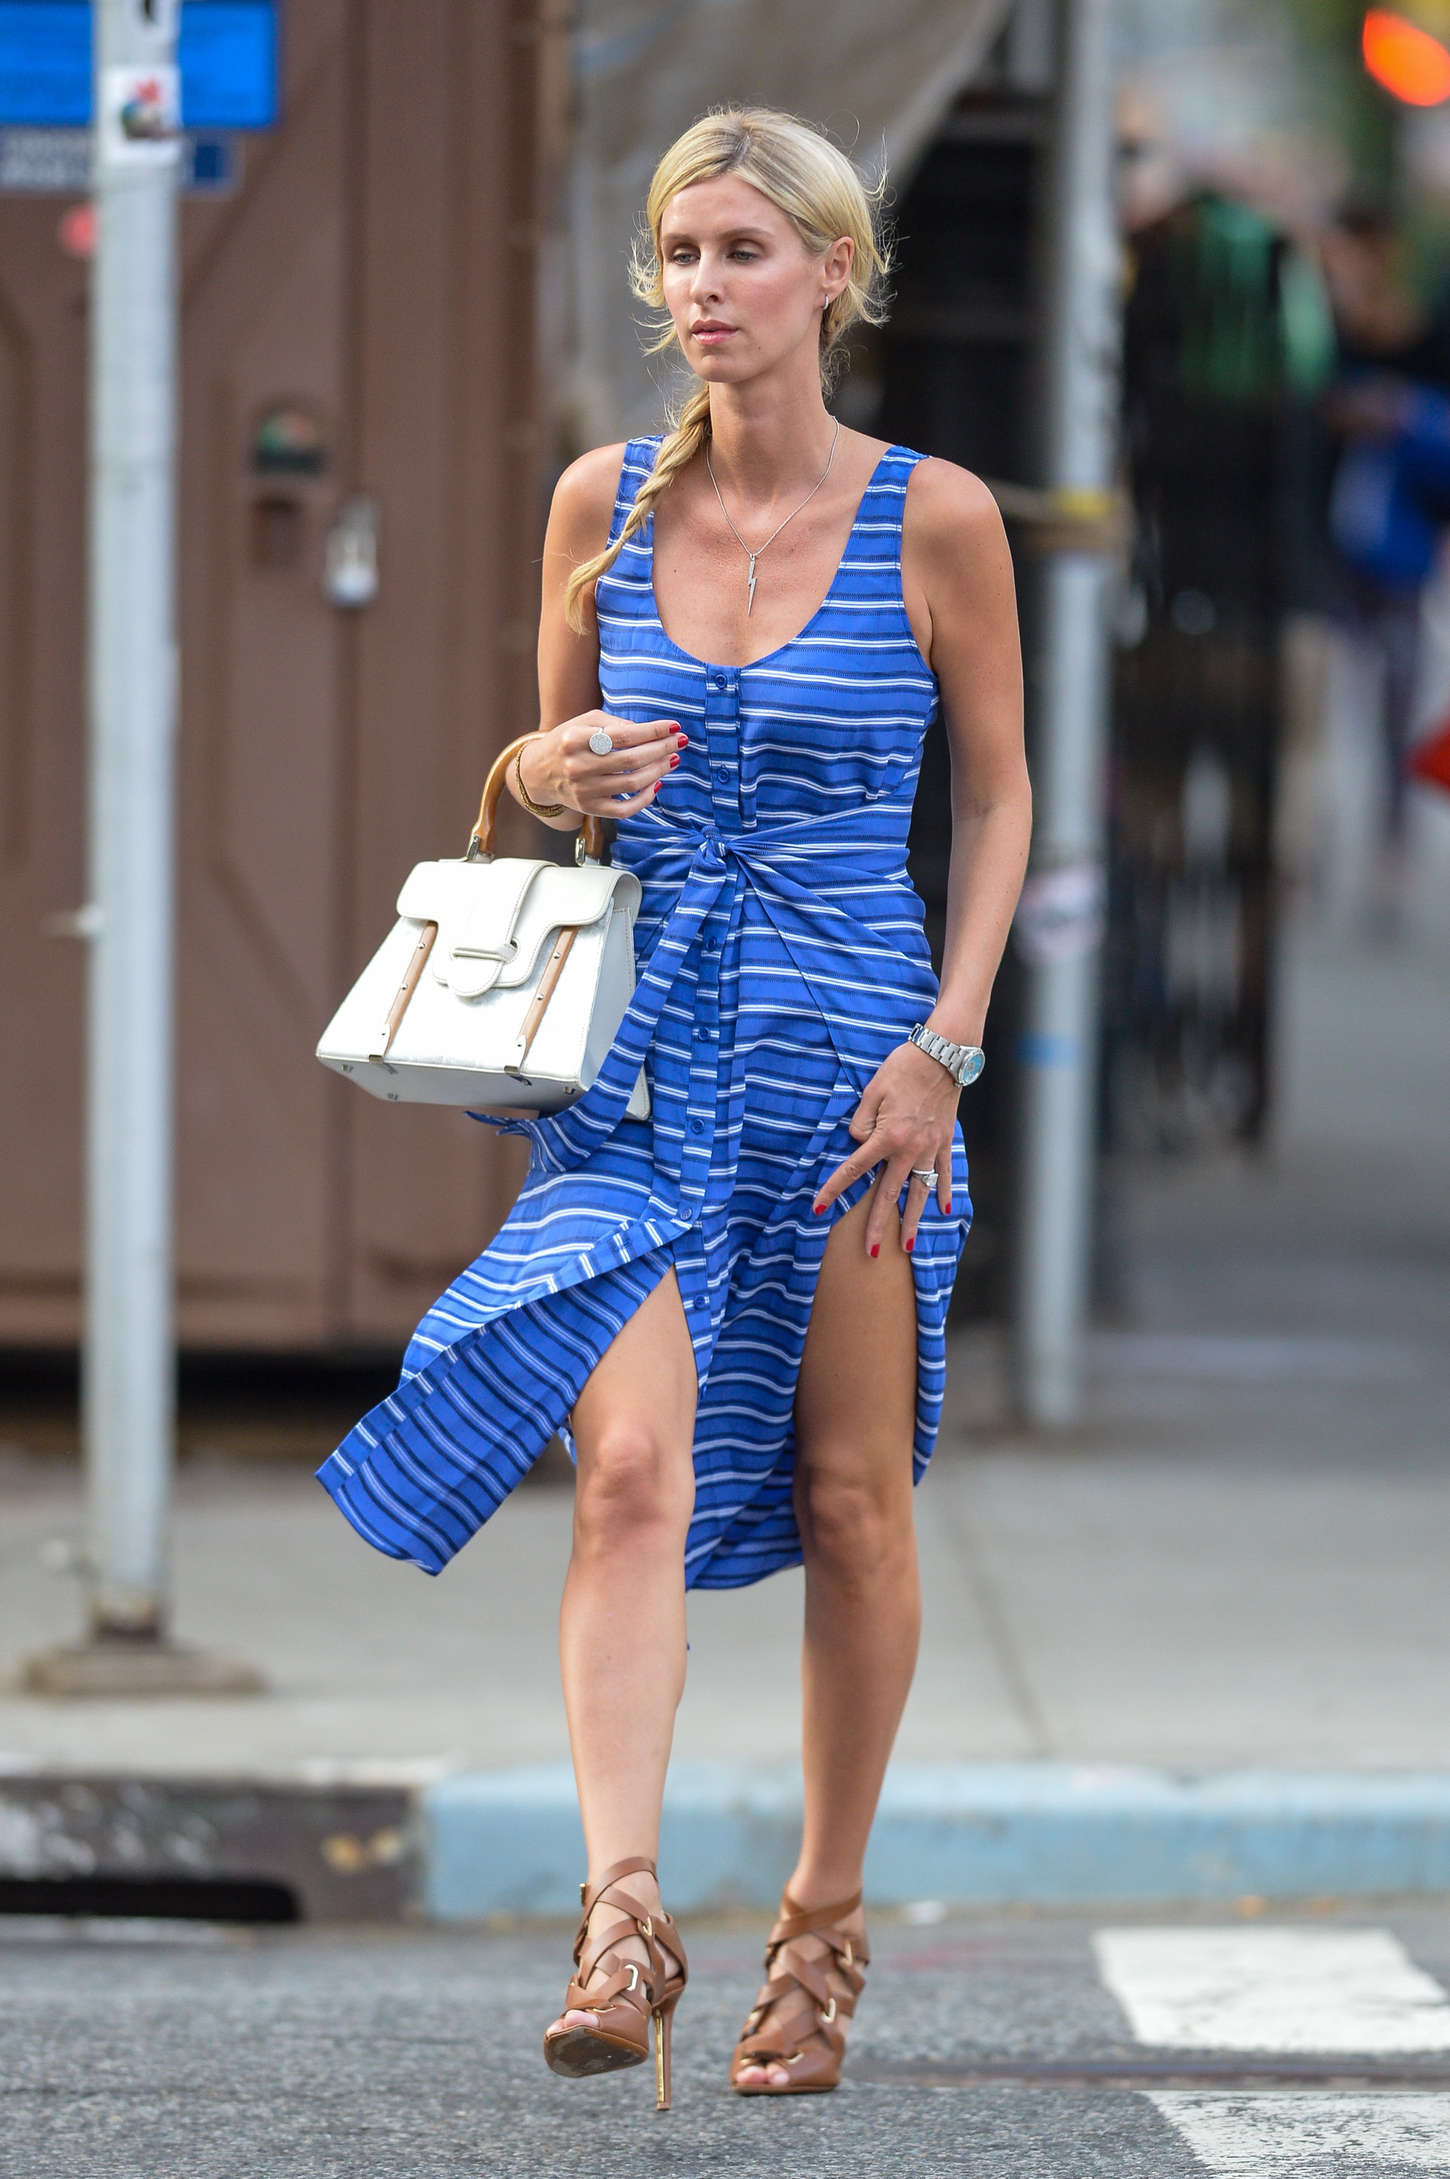 Nicky Hilton in Blue Mini Dress out in NYC